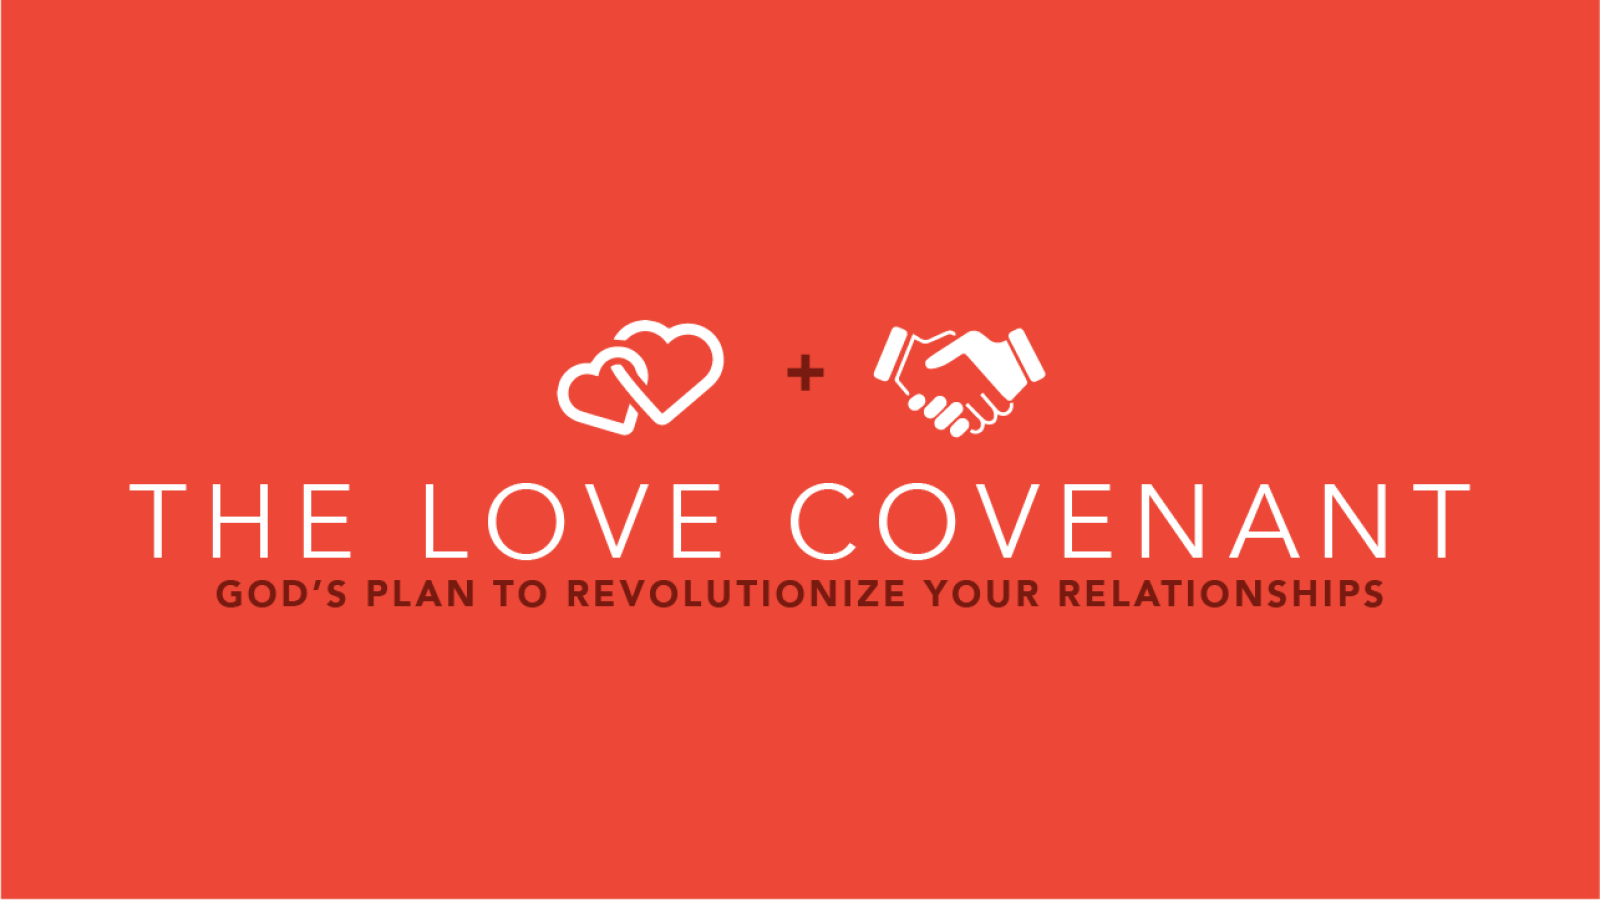 The Love Covenant